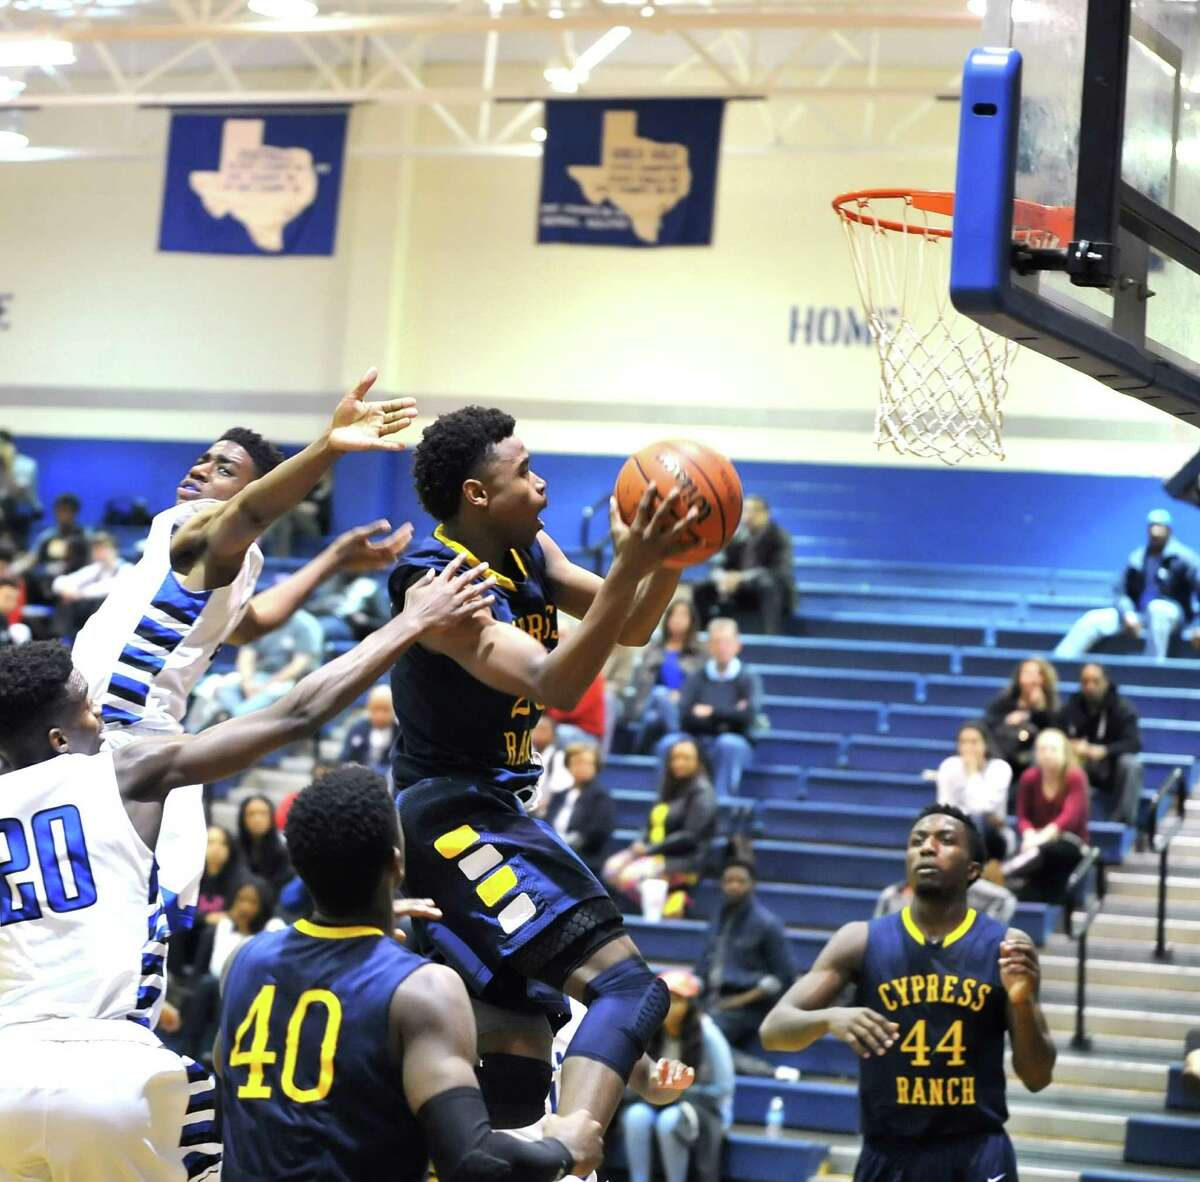 Cy Ranch and Cy Creek boys basketball teams played a game at the Cy Creek gym, 2-5-2016. Cy Ranch won the game, 56-43. Cy Ranch guard Michael Tate (23) scored on a layup in the third quarter against Cy Creek.